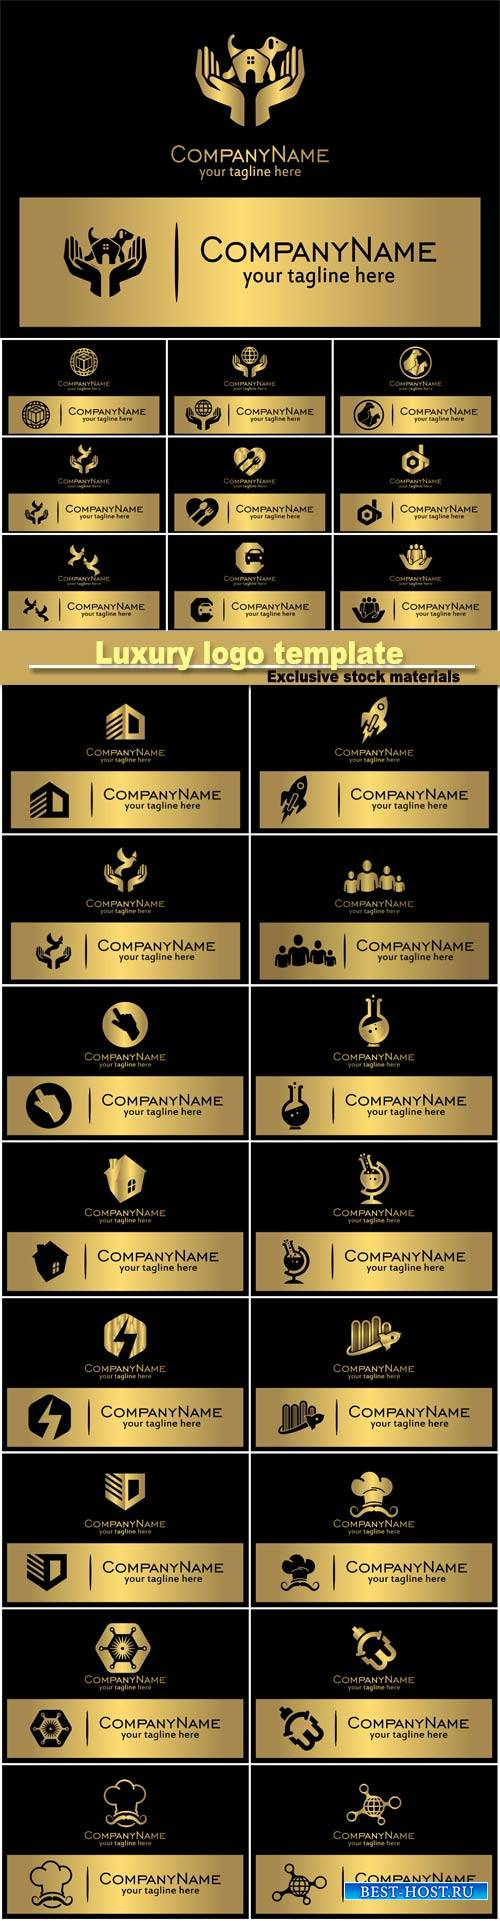 Luxury logo template, black with gold design